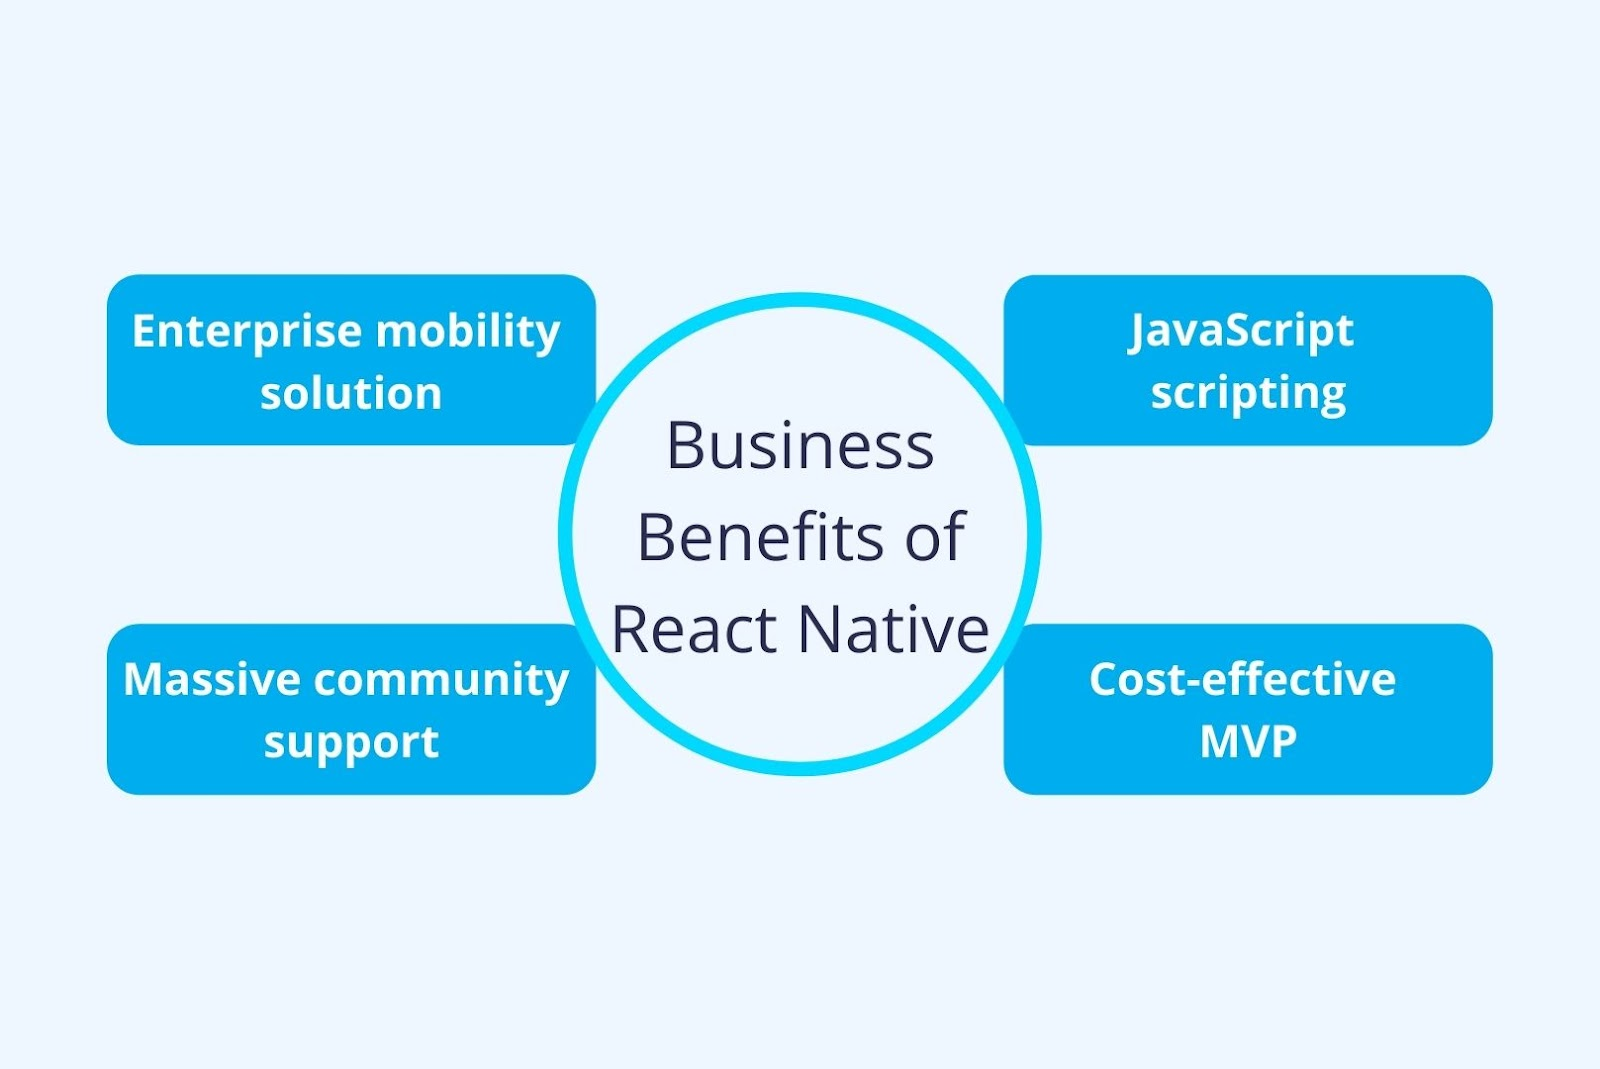 Business benefits of React Native